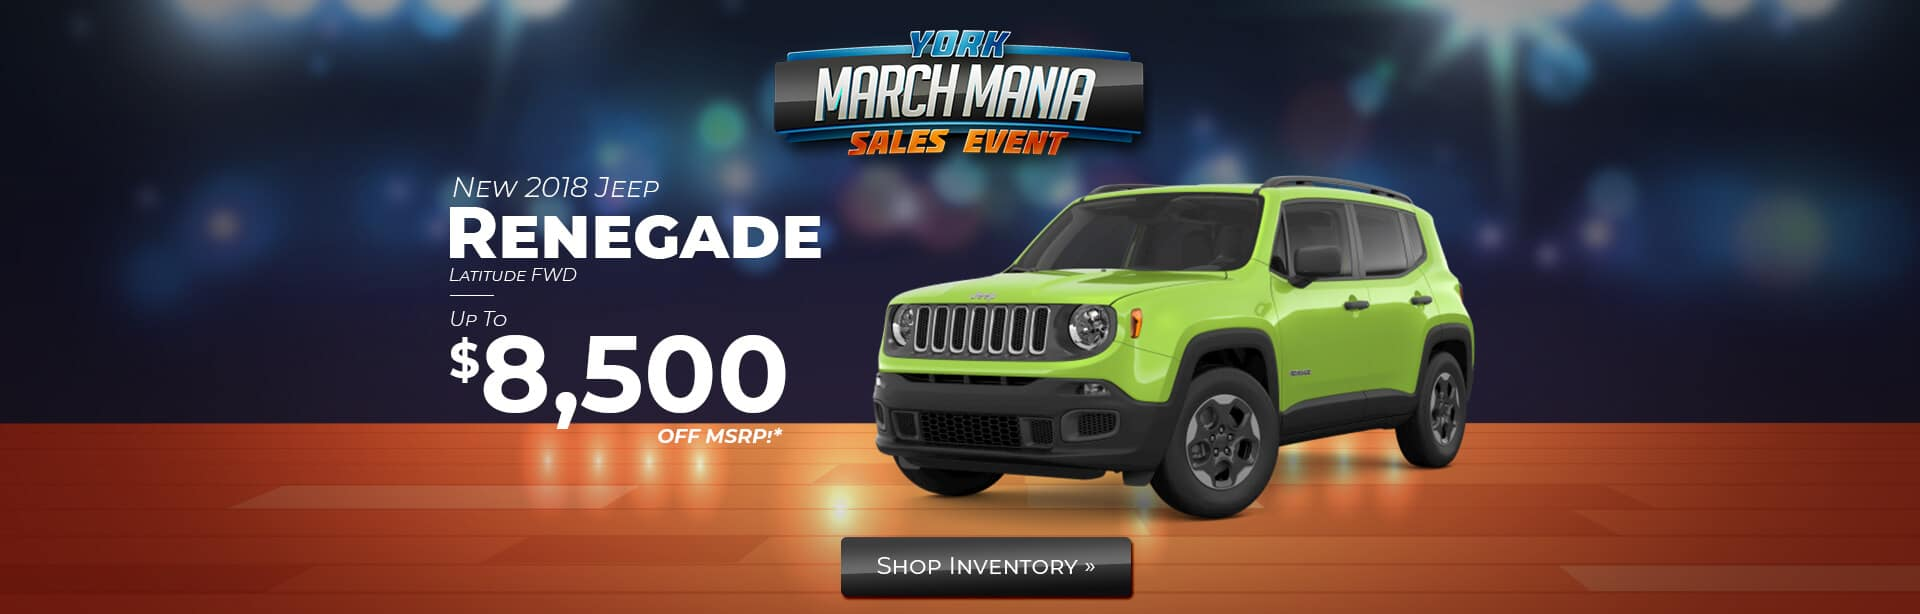 Save on a Jeep Renegade in Terre Haute, Indiana.